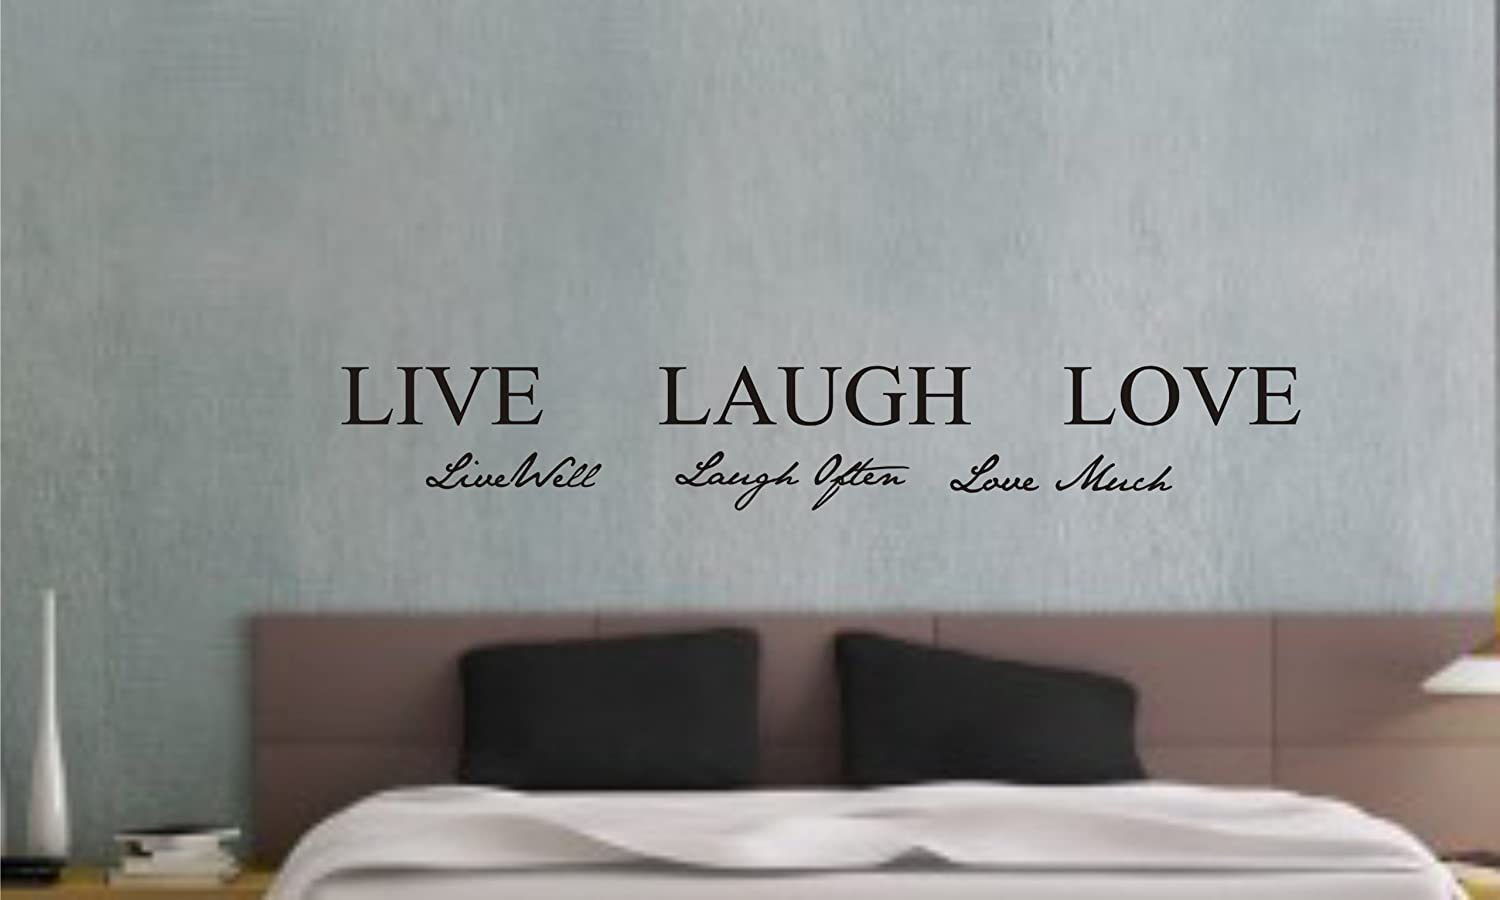 amazon com live well laugh often love much vinyl wall art amazon com live well laugh often love much vinyl wall art inspirational quotes and saying home decor decal sticker steamss home kitchen